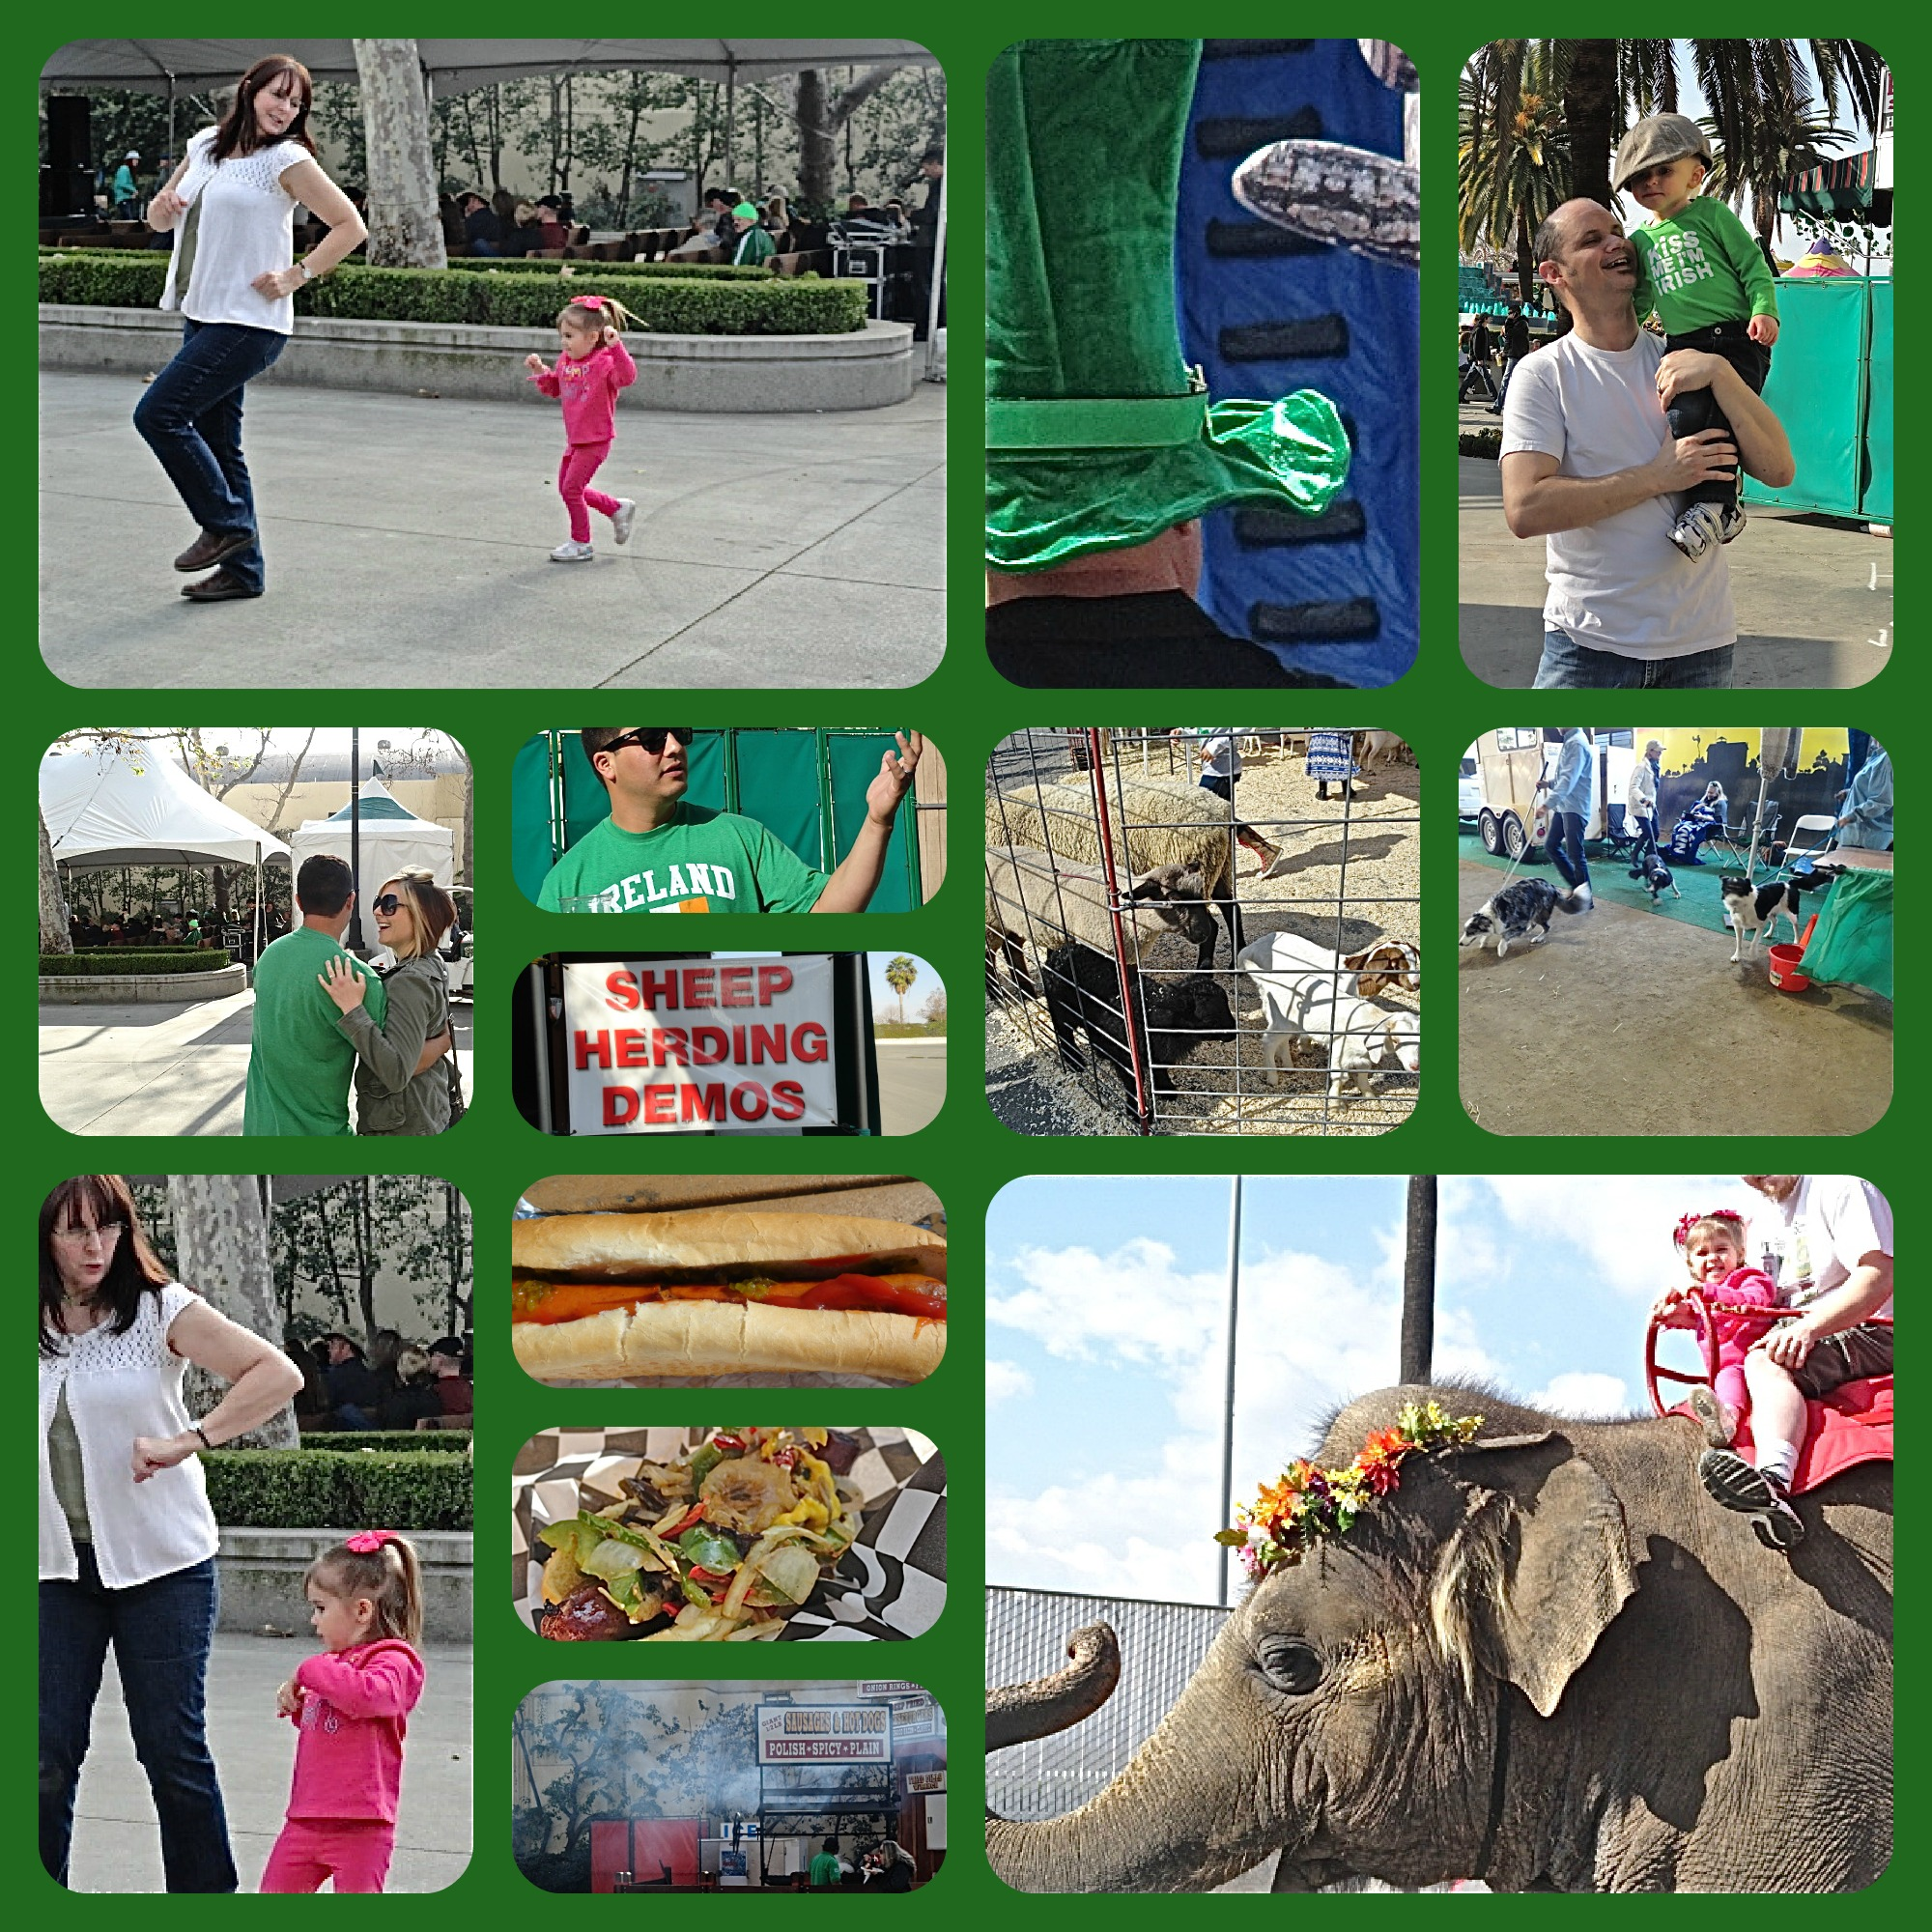 St. Patrick's Day, Irish Festival, L.A. County Fairgrounds, elephants, petting zoo, dancing, Lynn Kelley, Lynn Kelley author, http://lynnkelleyauthor.wordpress.com